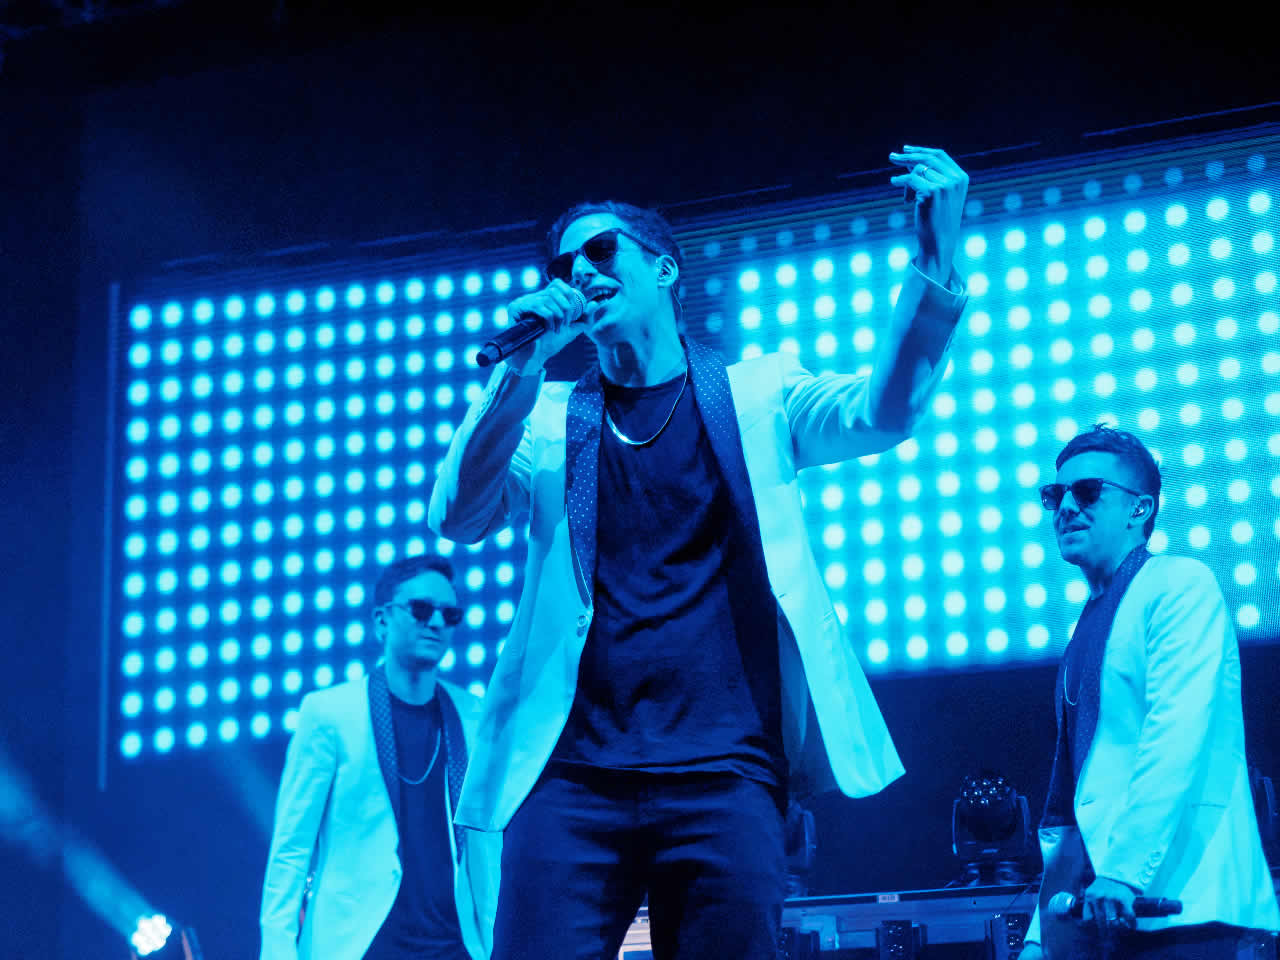 <div class='meta'><div class='origin-logo' data-origin='none'></div><span class='caption-text' data-credit='KGO-TV'>The Lonely Island is seen performing at Clusterfest in San Francisco, Calif. on June 1, 2018.</span></div>